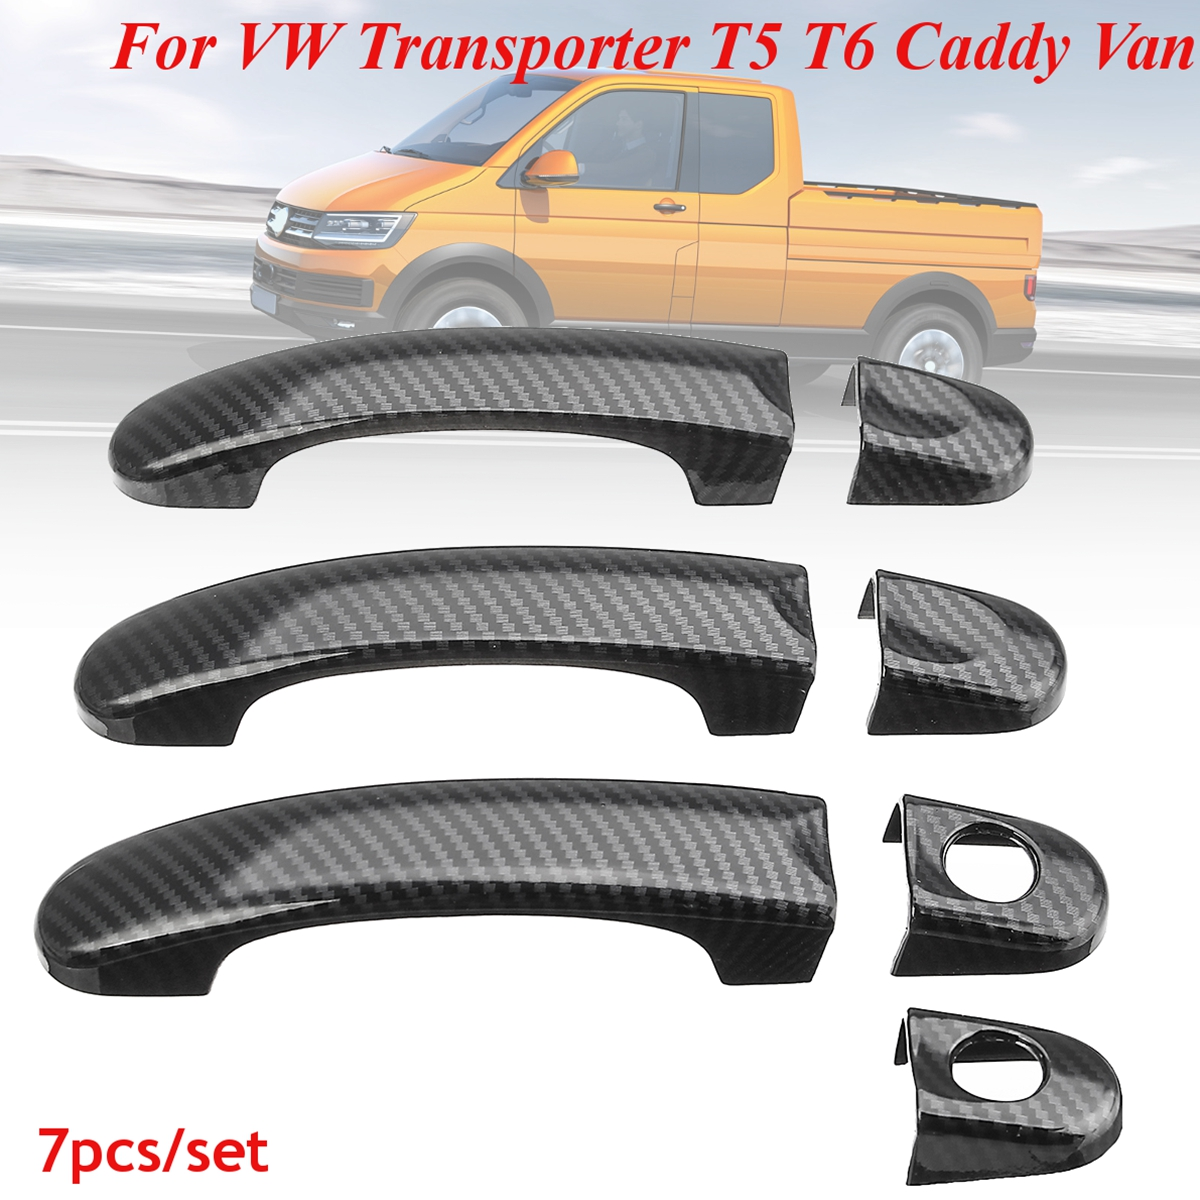 7pcs Door Handle Covers Carbon Fiber For <font><b>VW</b></font> For <font><b>VW</b></font> Transporter <font><b>T5</b></font> T6 Caddy for Vans 2004 05 06 07 08 09 10 11 12 13 14 15+ image